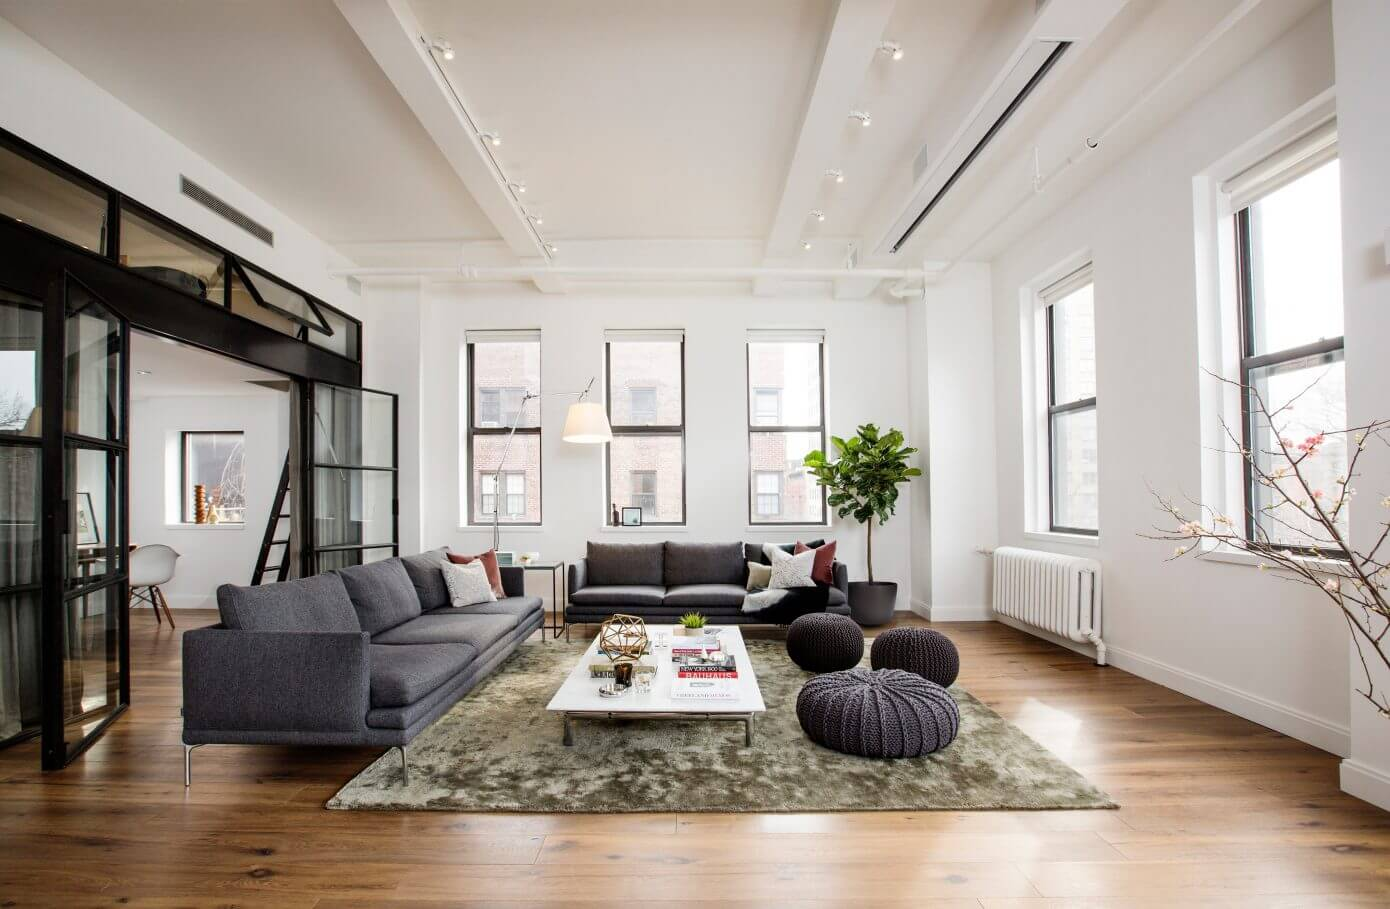 extraordinary new york loft living room | East Village Loft by Shadow Architects | HomeAdore